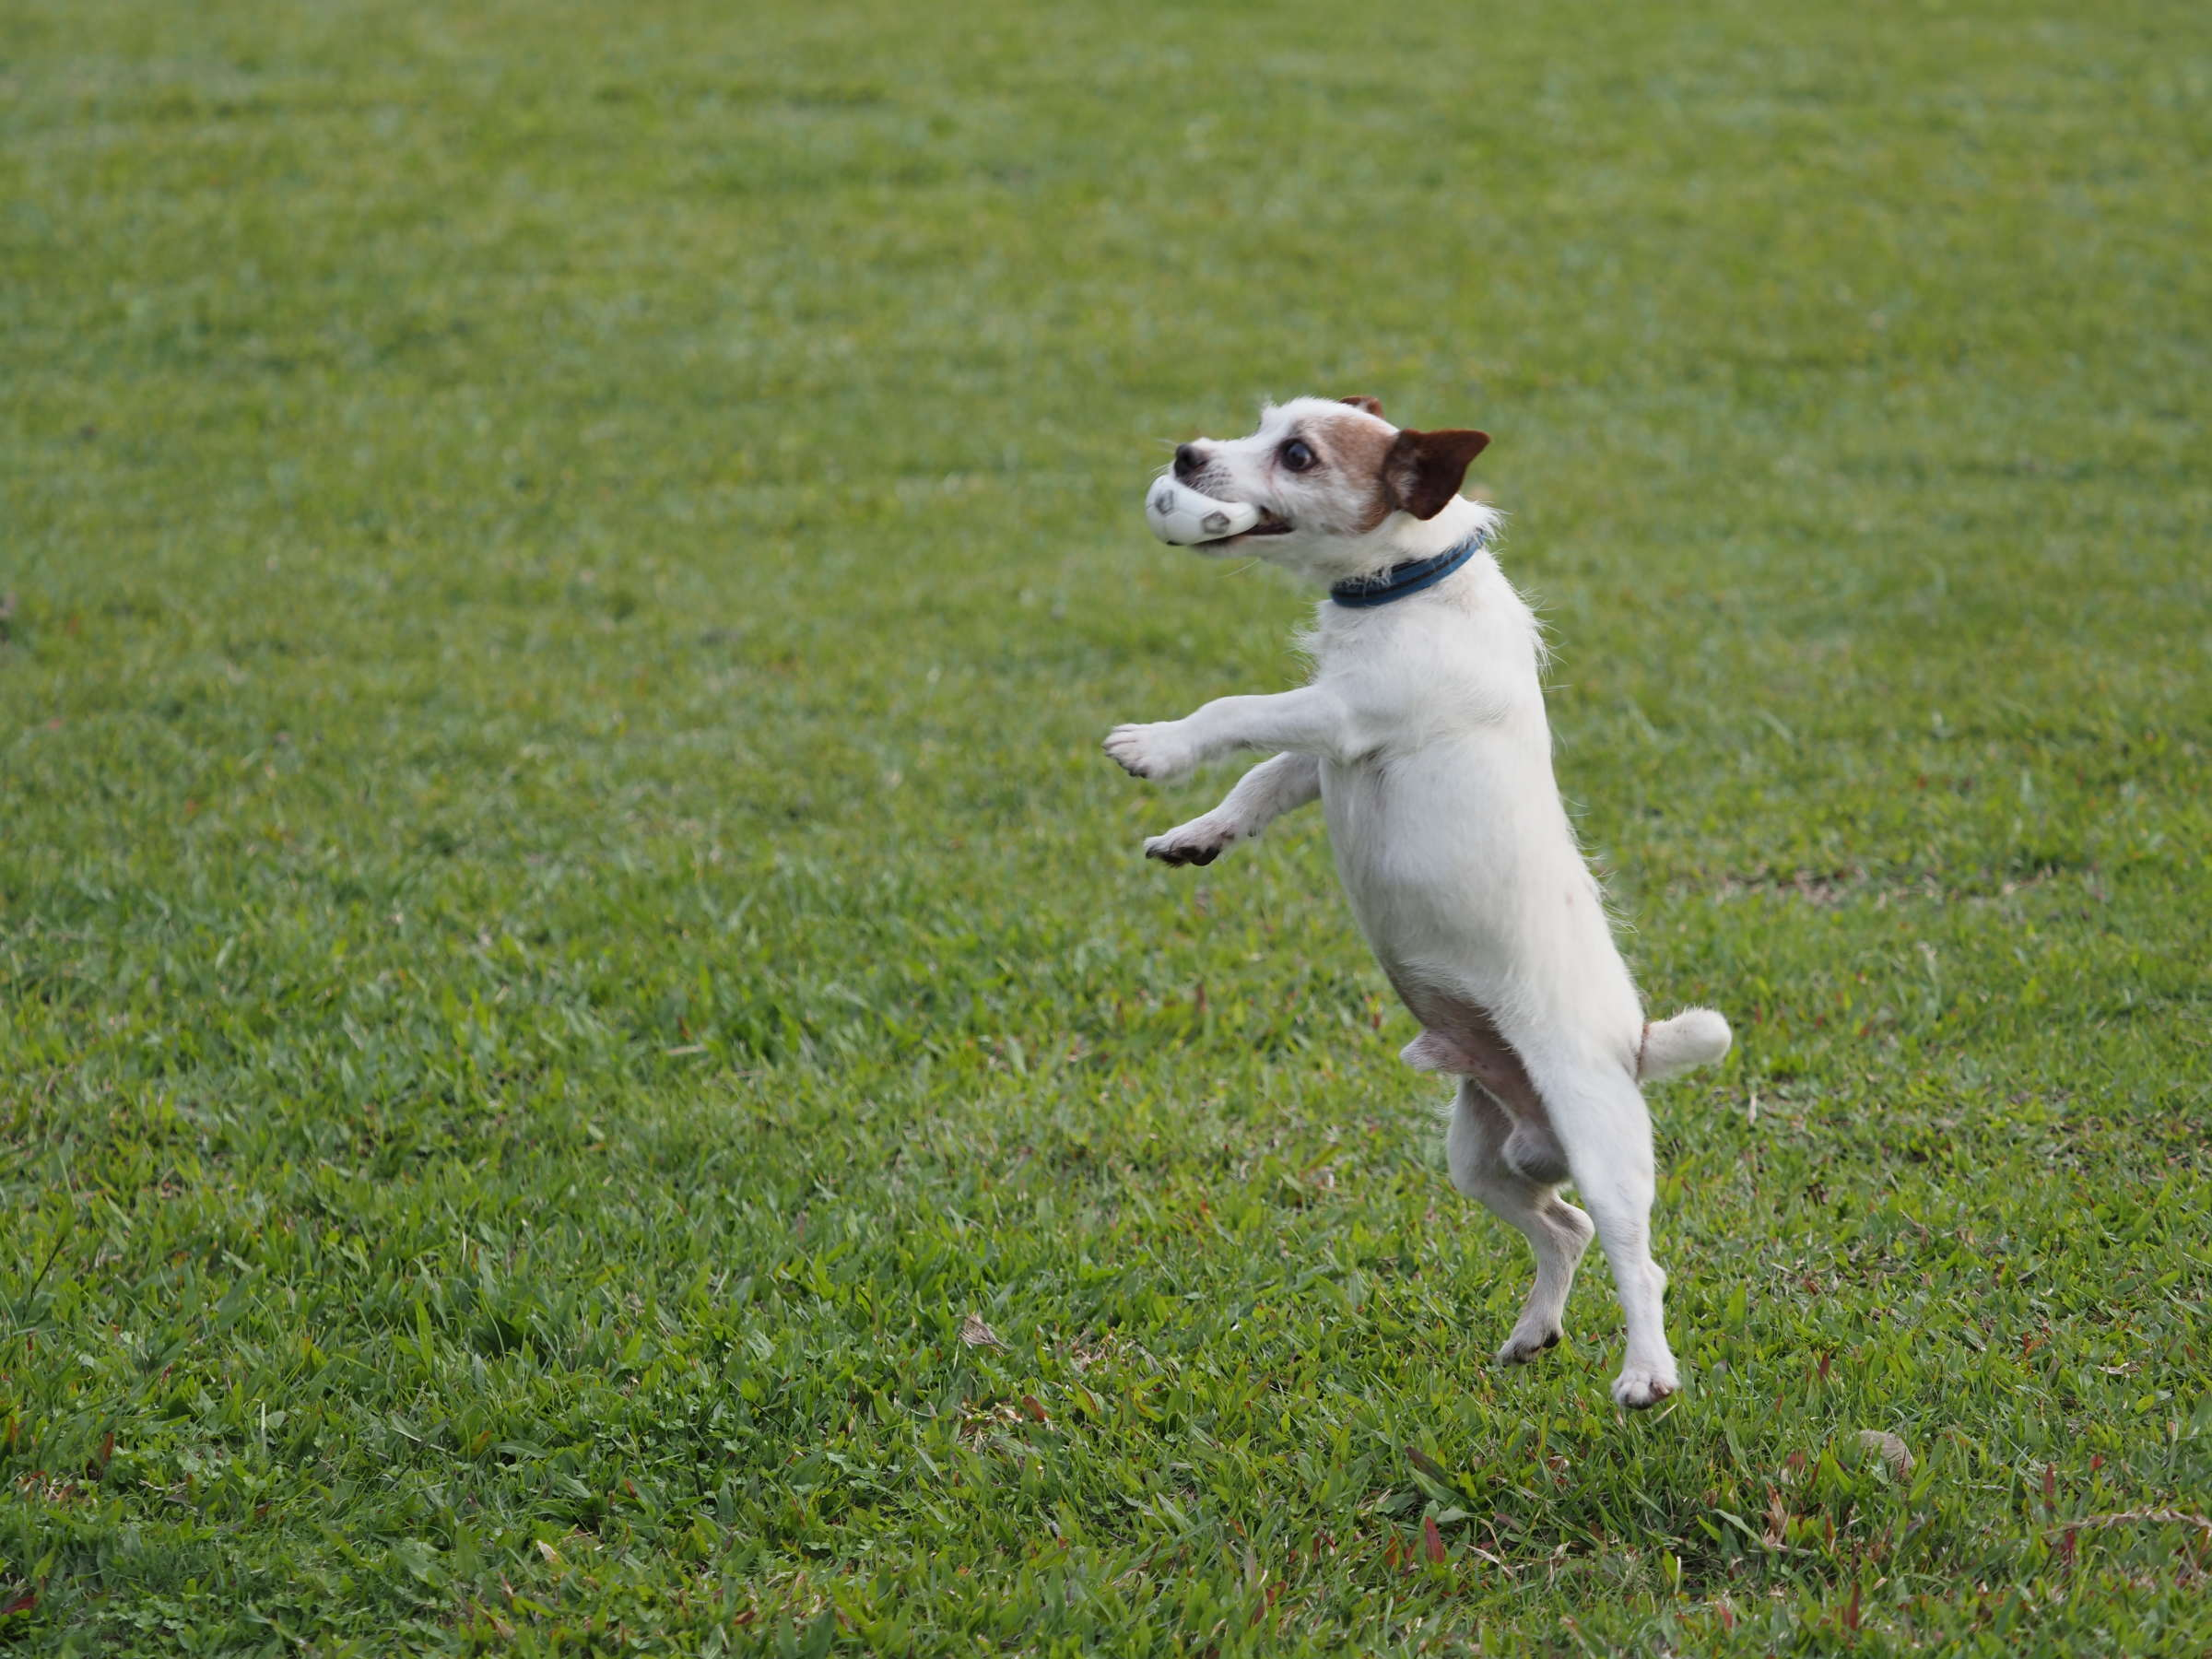 Dog breed, Whippet, Jack Russell Terrier, Longhaired Whippet, Lure coursing, Parson Russell Terrier, Companion dog, Terrier, Coursing, Breed, grass, dog breed, grass, lure coursing, whippet, dog breed group, meadow, companion dog, grass family, field, lawn